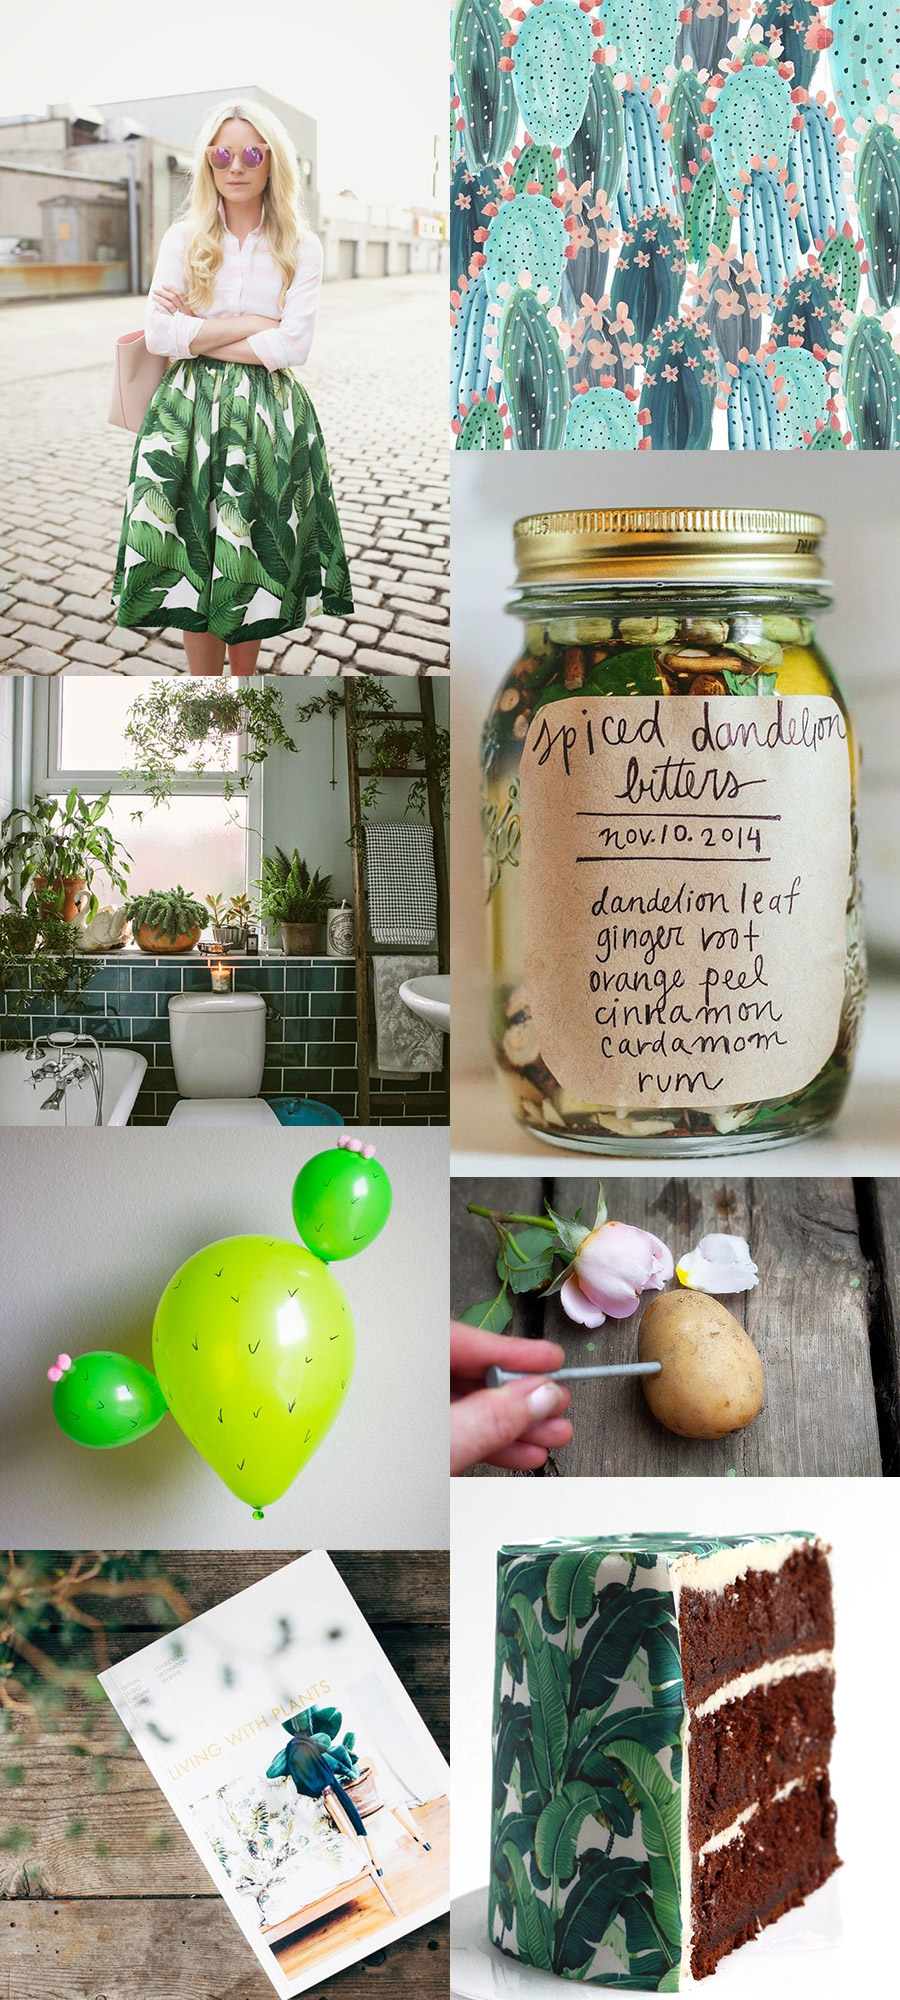 Botanical crafts to try